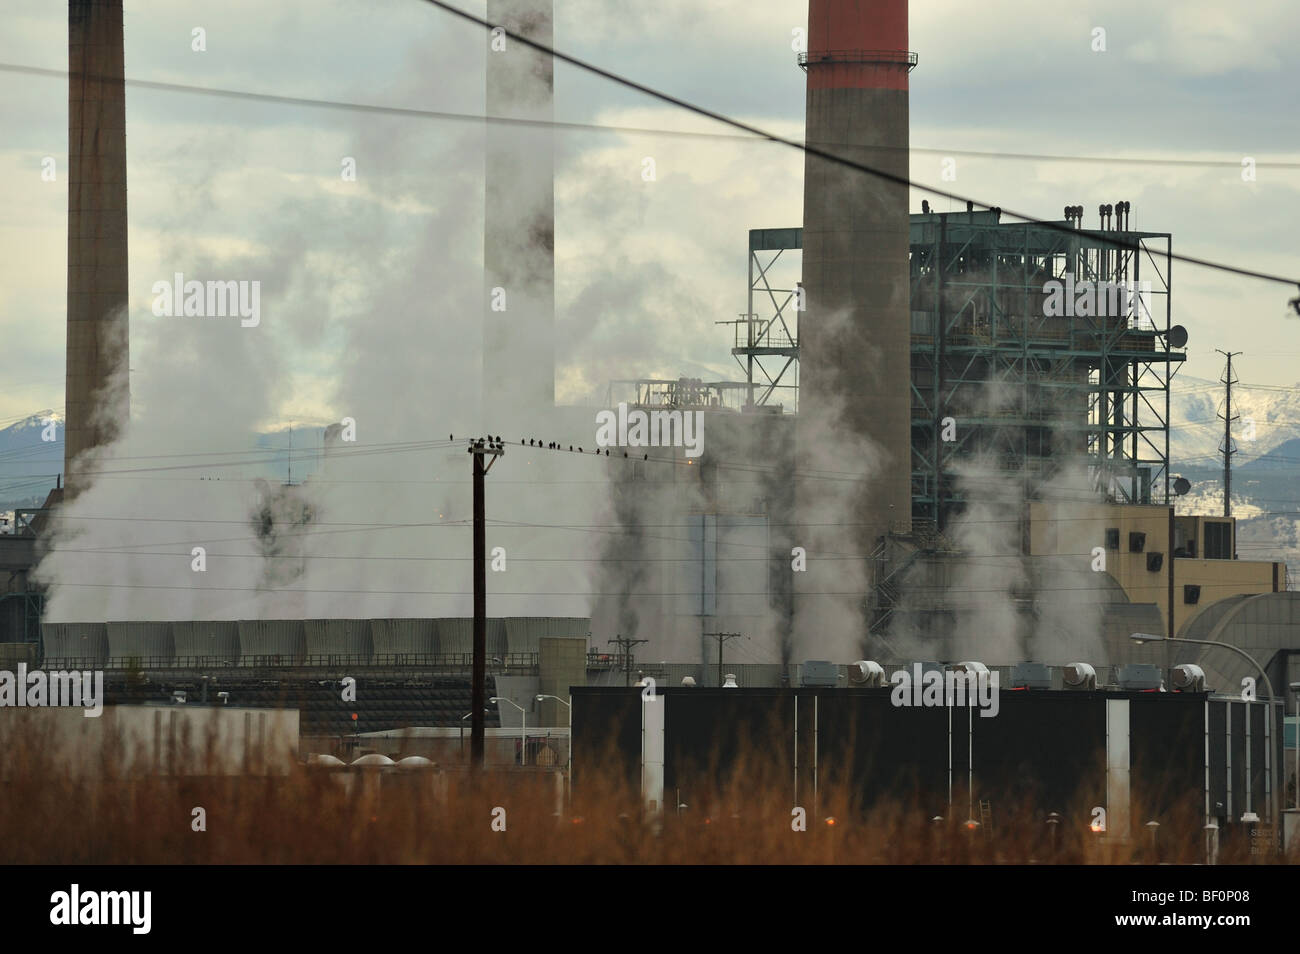 Coal-fired power plant with smoke stacks - Stock Image